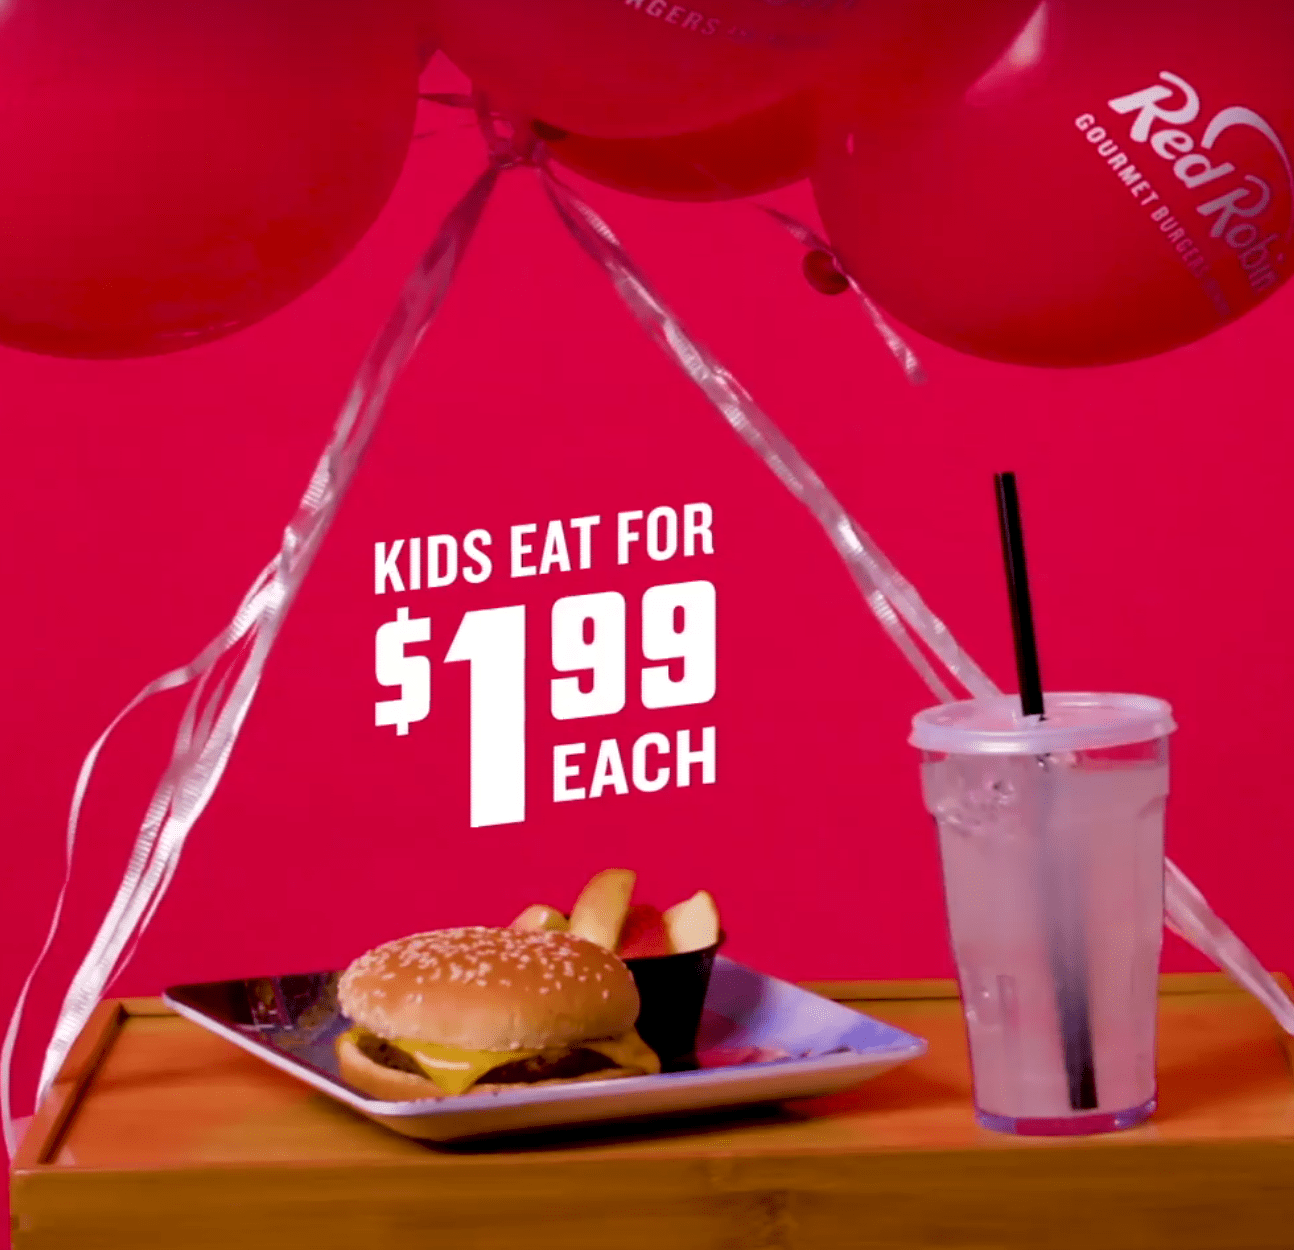 Red Robin Discounts - $1.99 Kids Meals